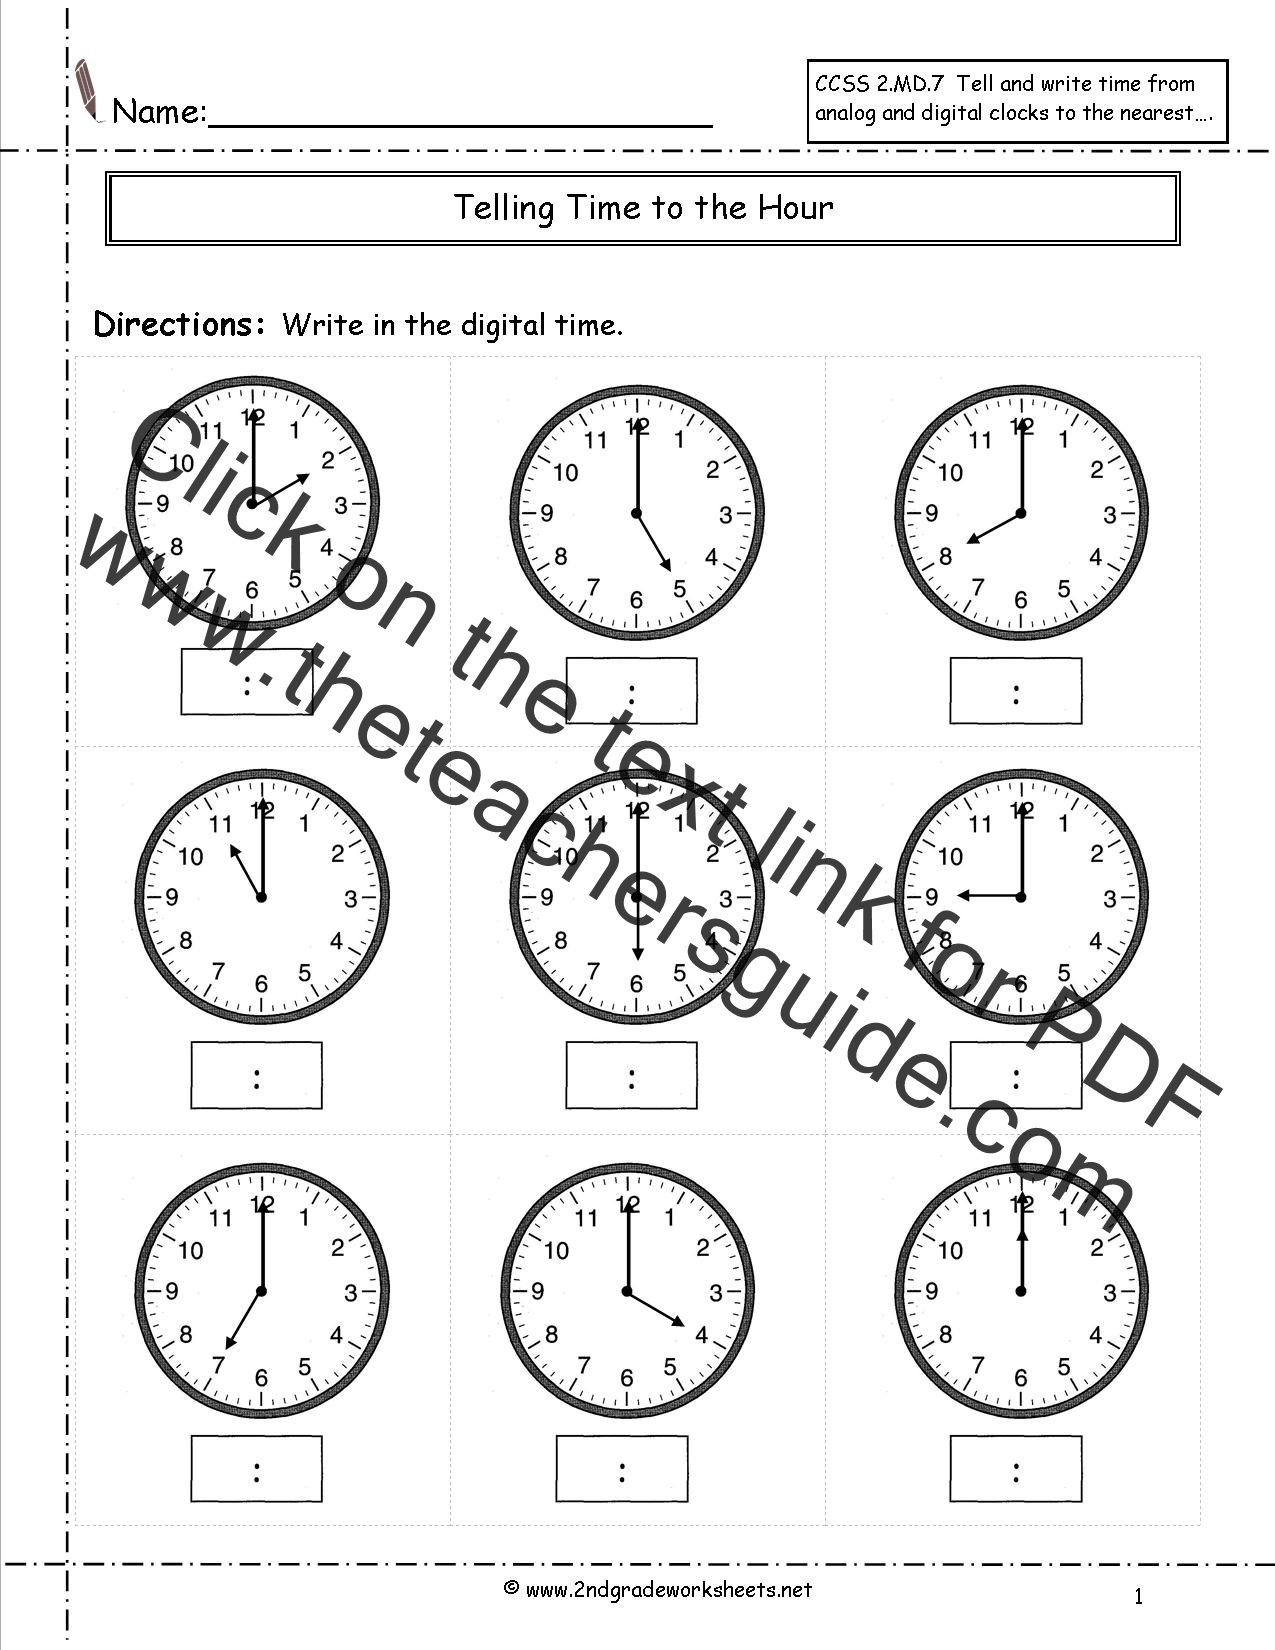 Worksheets What Time Is It Worksheet telling and writing time worksheets to hour worksheet